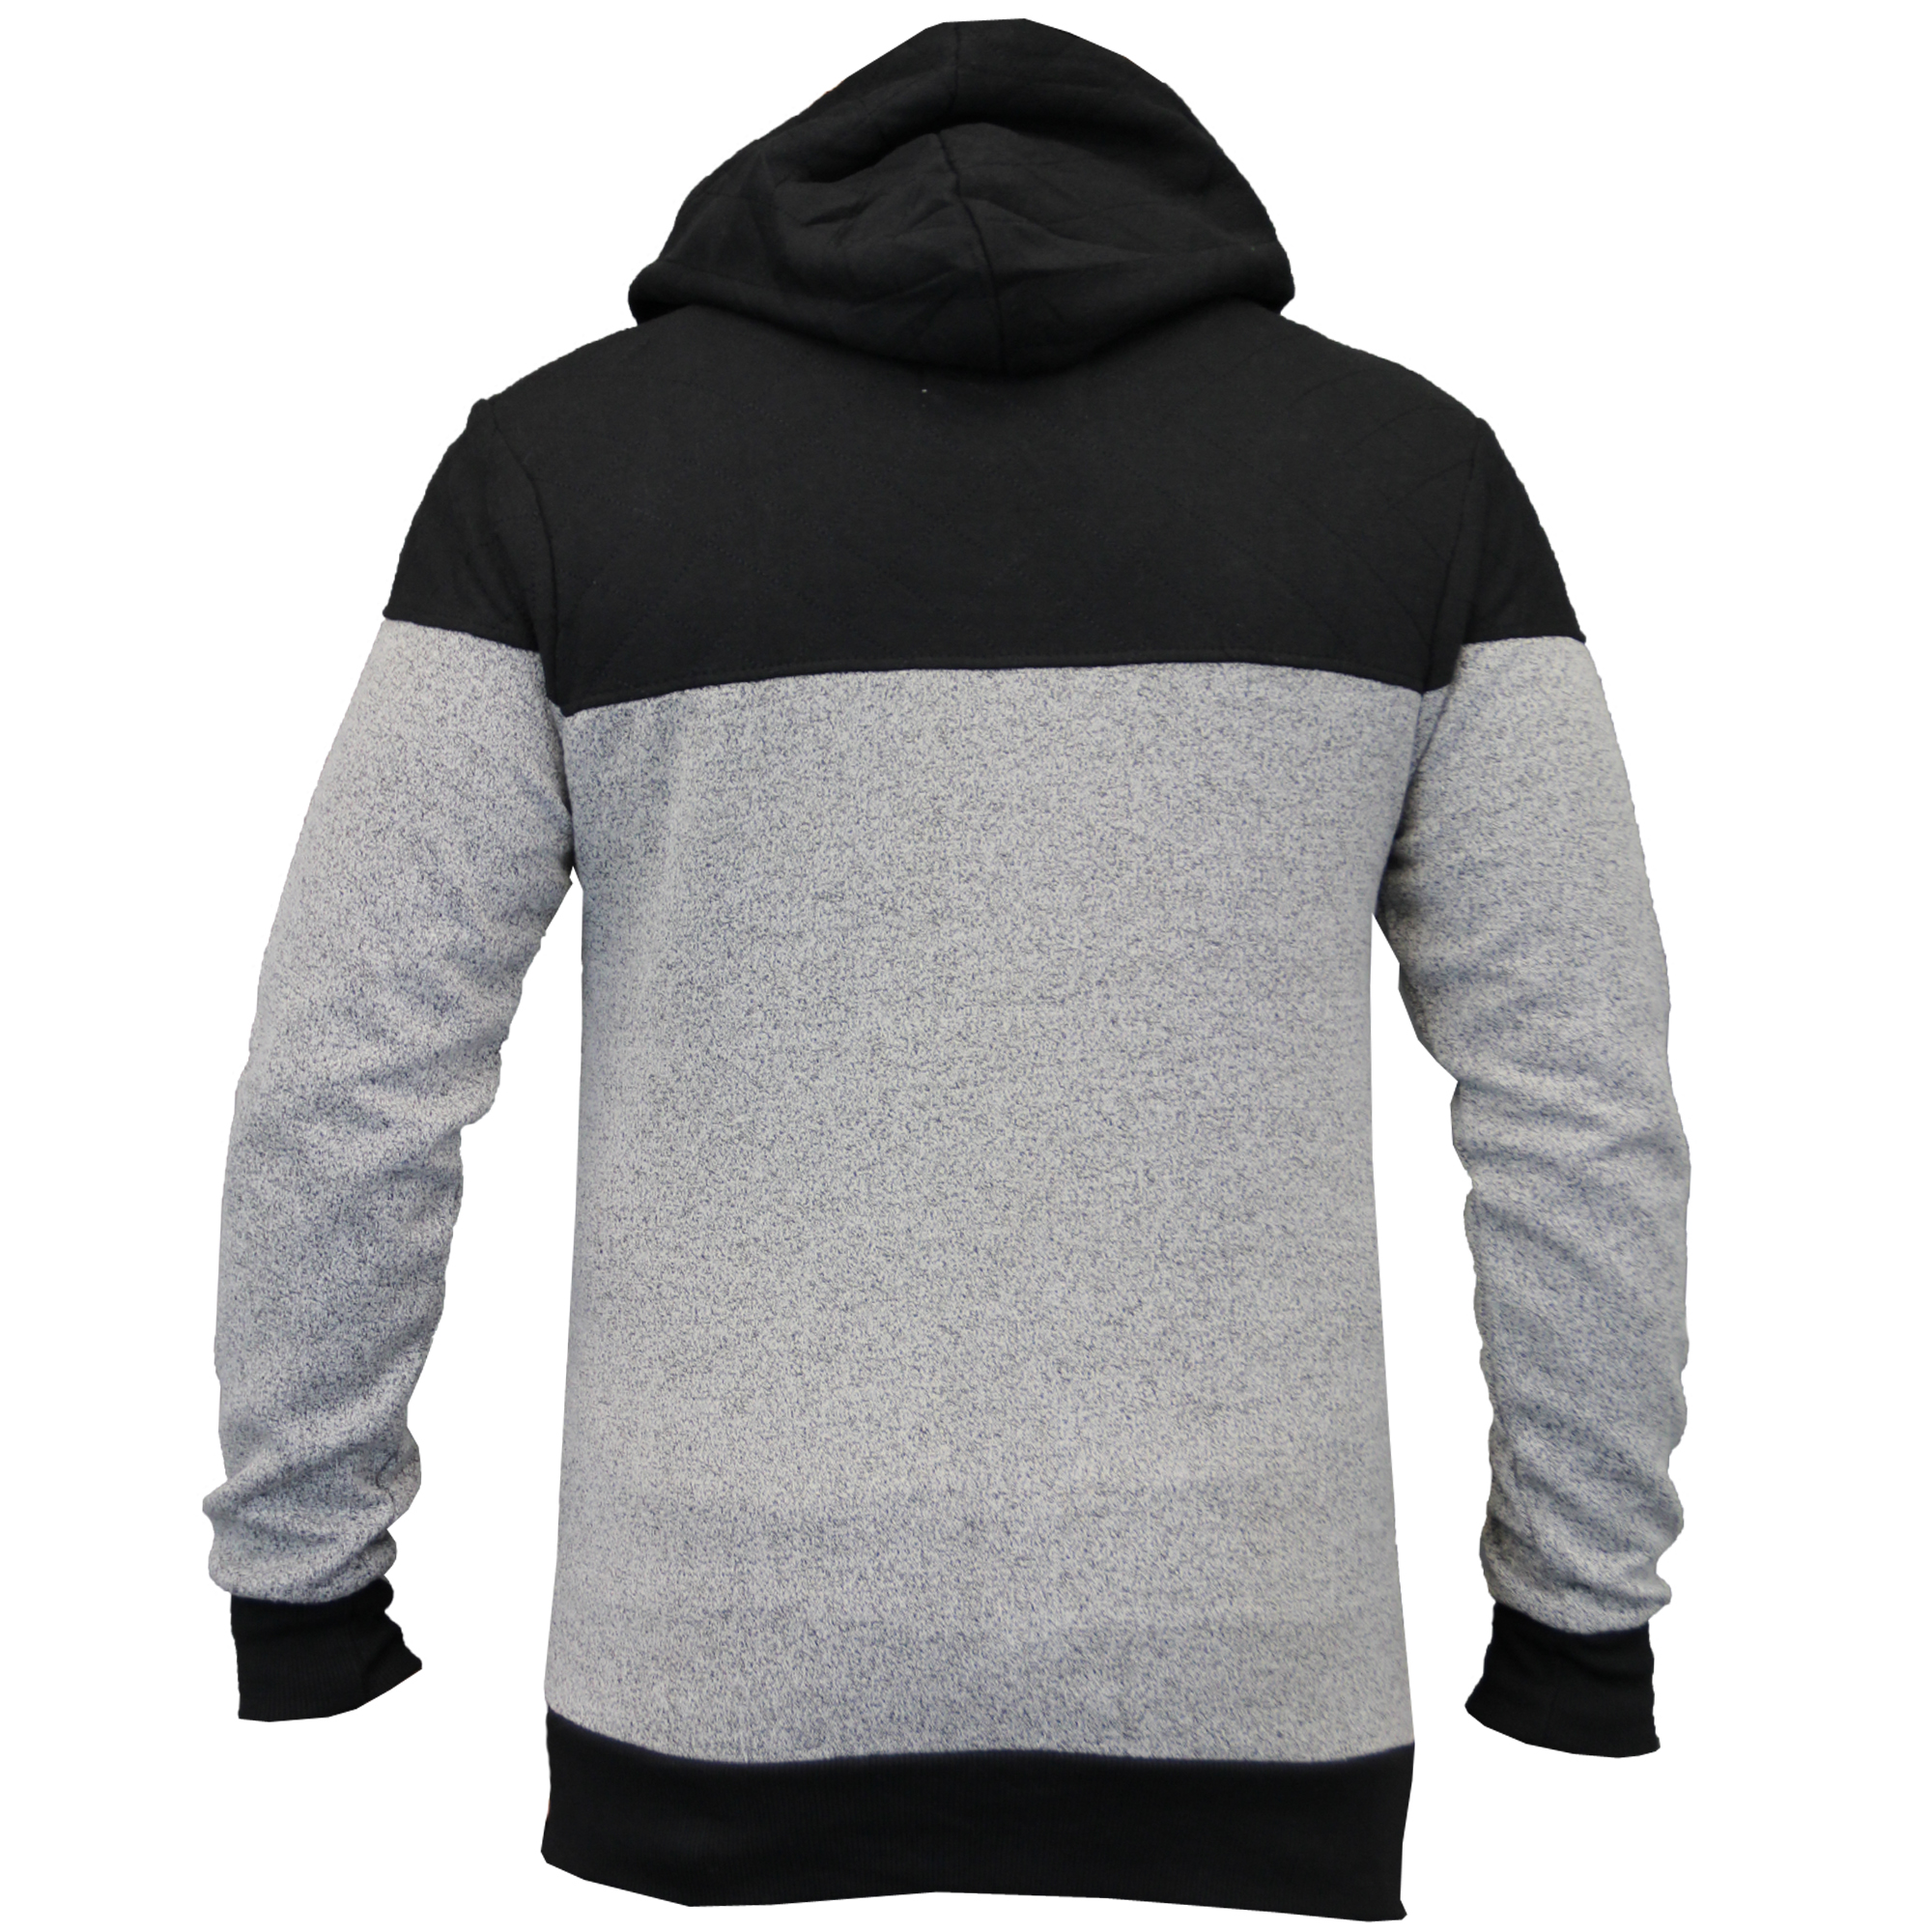 Mens-Diamond-Quilted-Hooded-Top-Fleece-Lined-Sweatshirt-By-Galvanize thumbnail 8